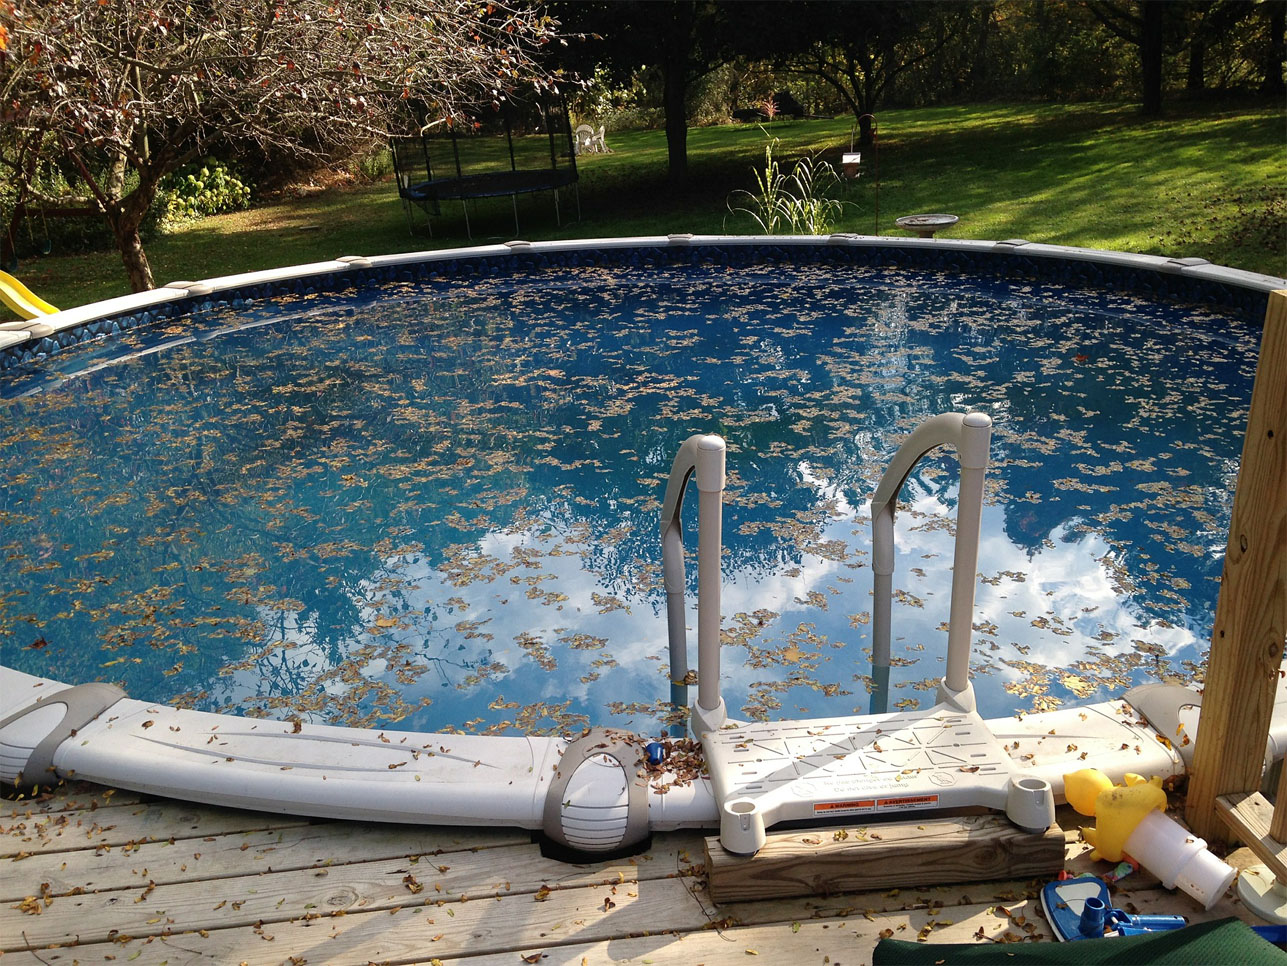 Why You May Want To Hire A Pool Maintenance Company To Close Your Inground Pool